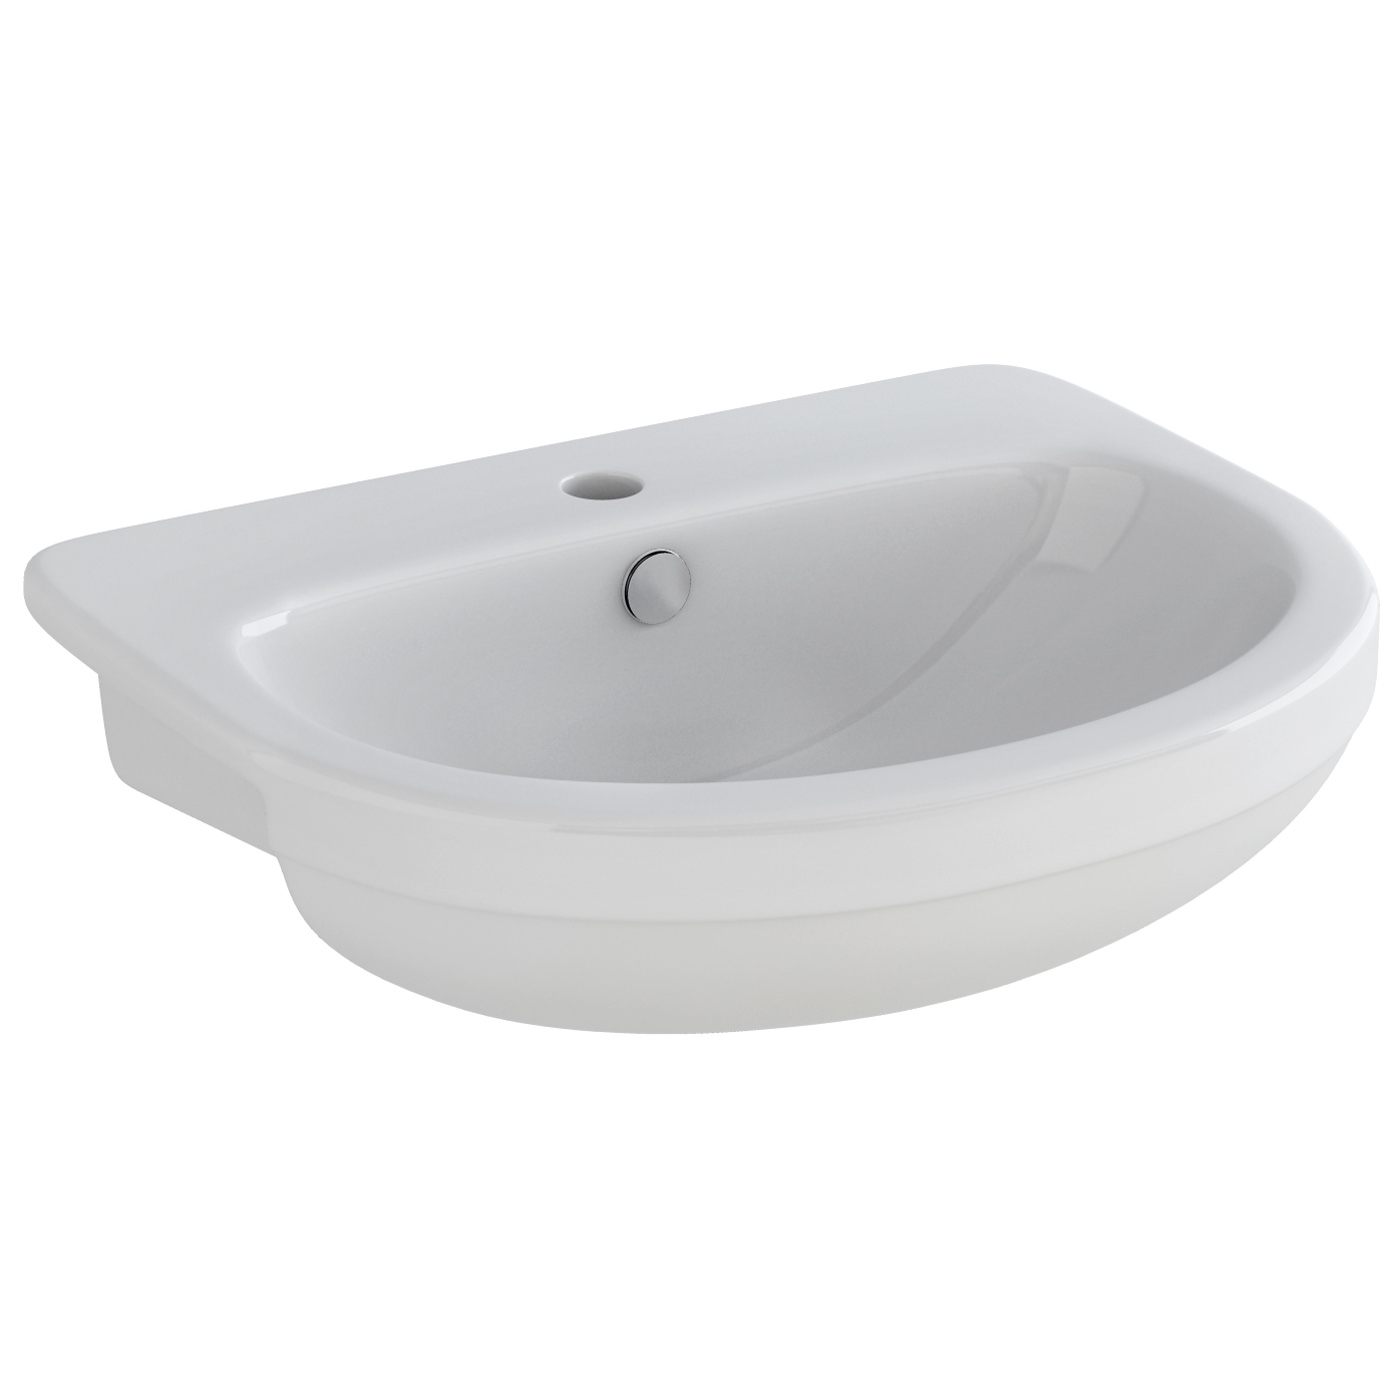 Imponeren Glass Circular Vessel Bathroom Sink by Novatto